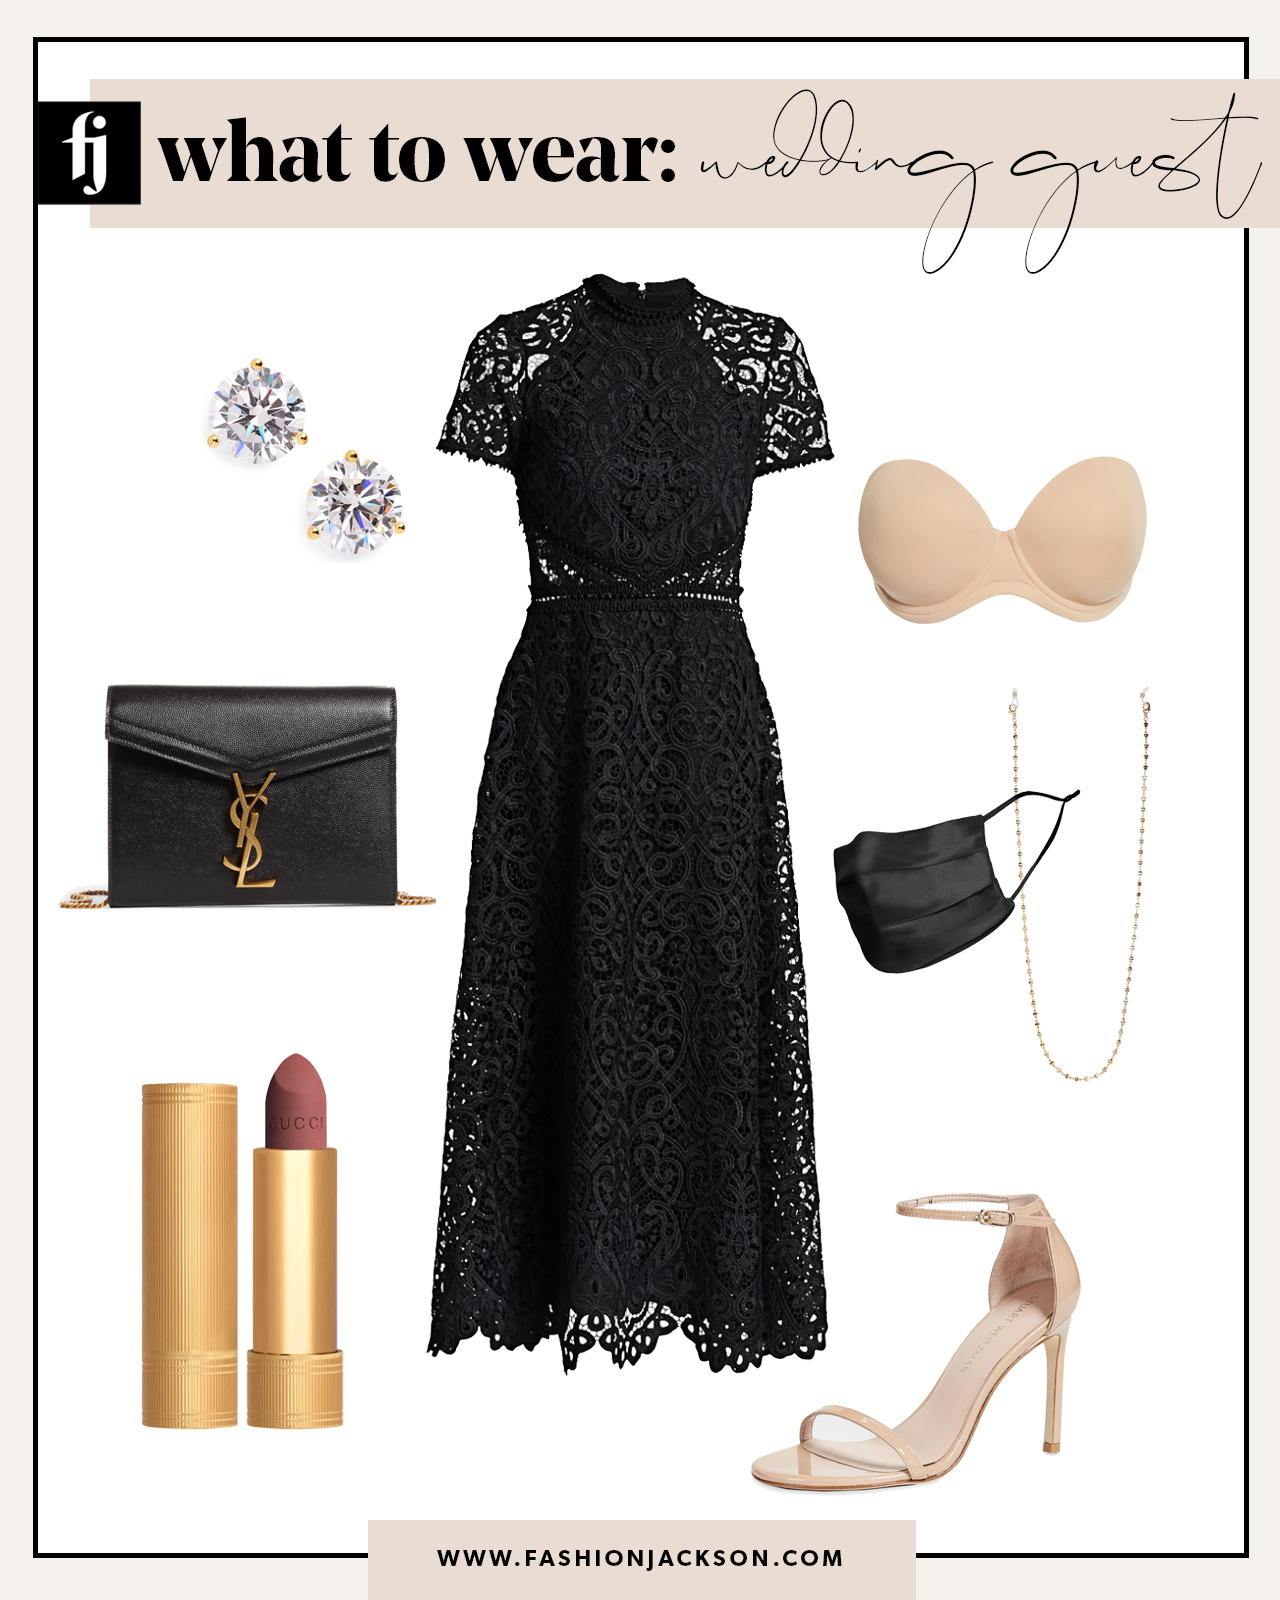 wedding guest outfit 1